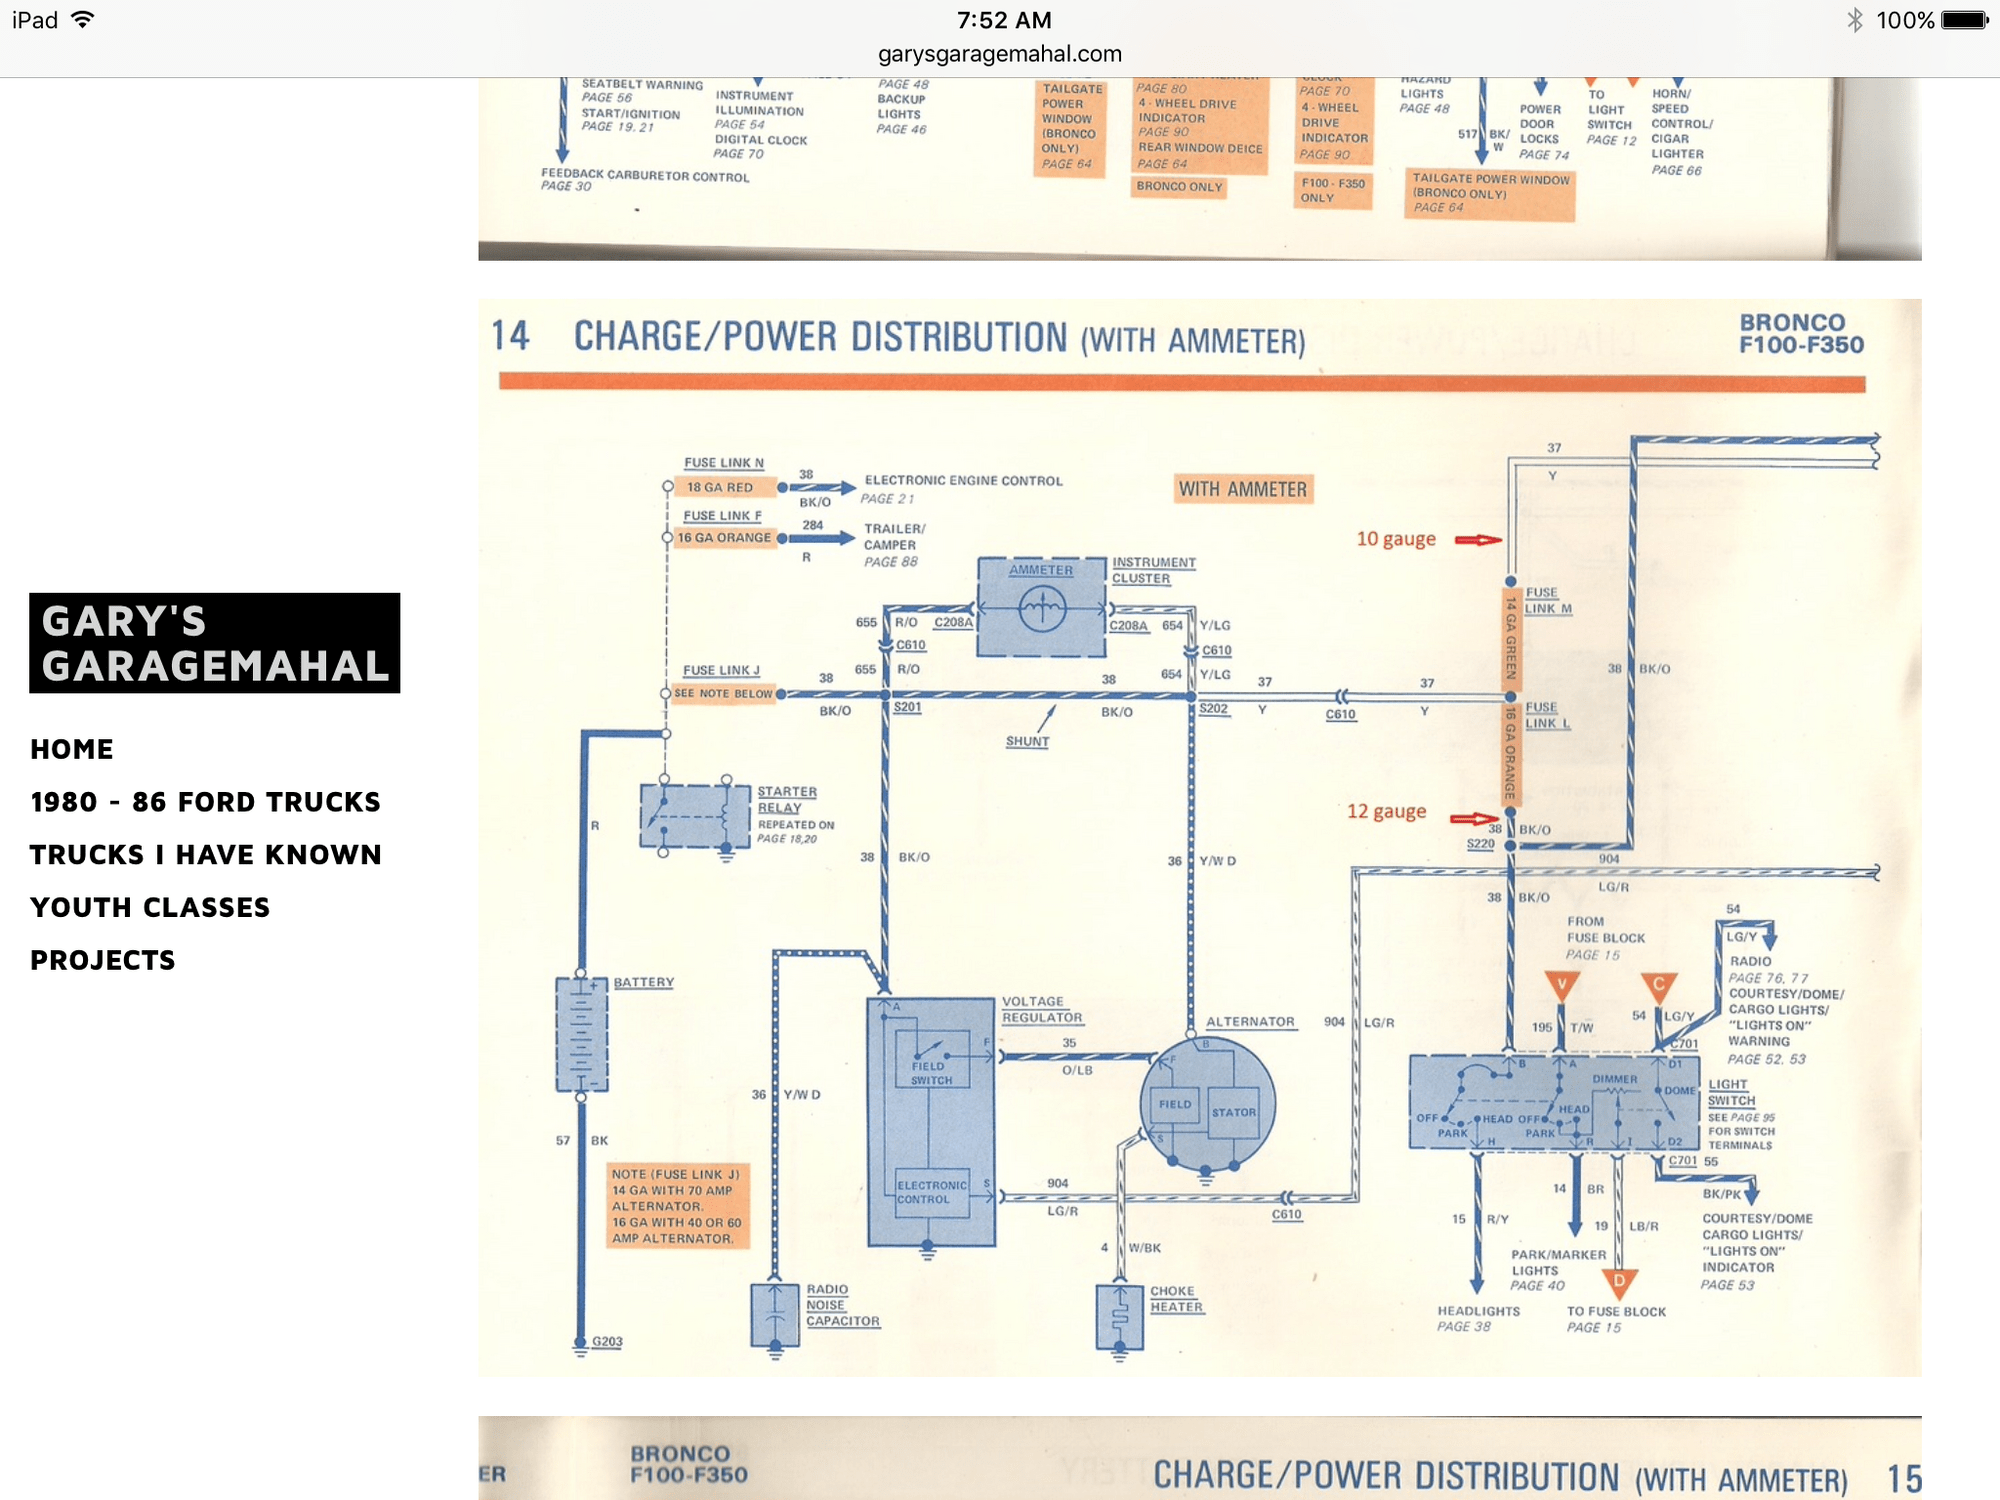 ford alternator diode testing wiring diagram for ac thermostat parasitic battery draw (key off drain) - page 7 truck enthusiasts forums